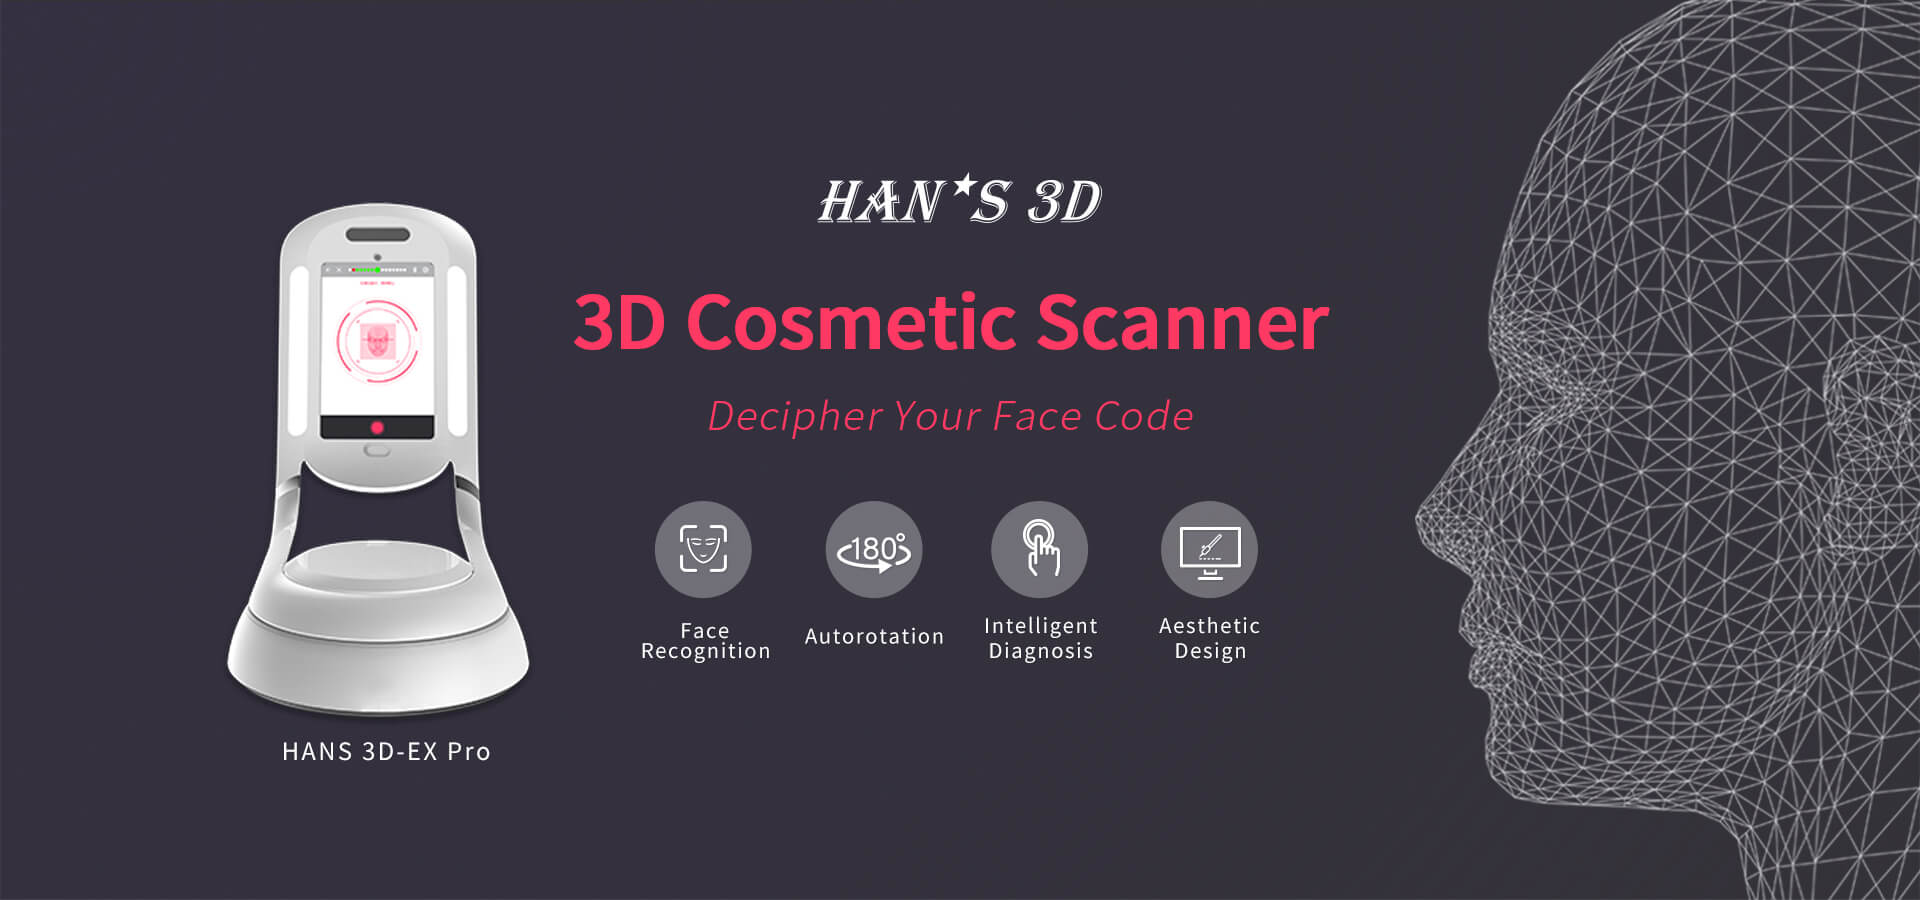 3D Cosmetic Scanner